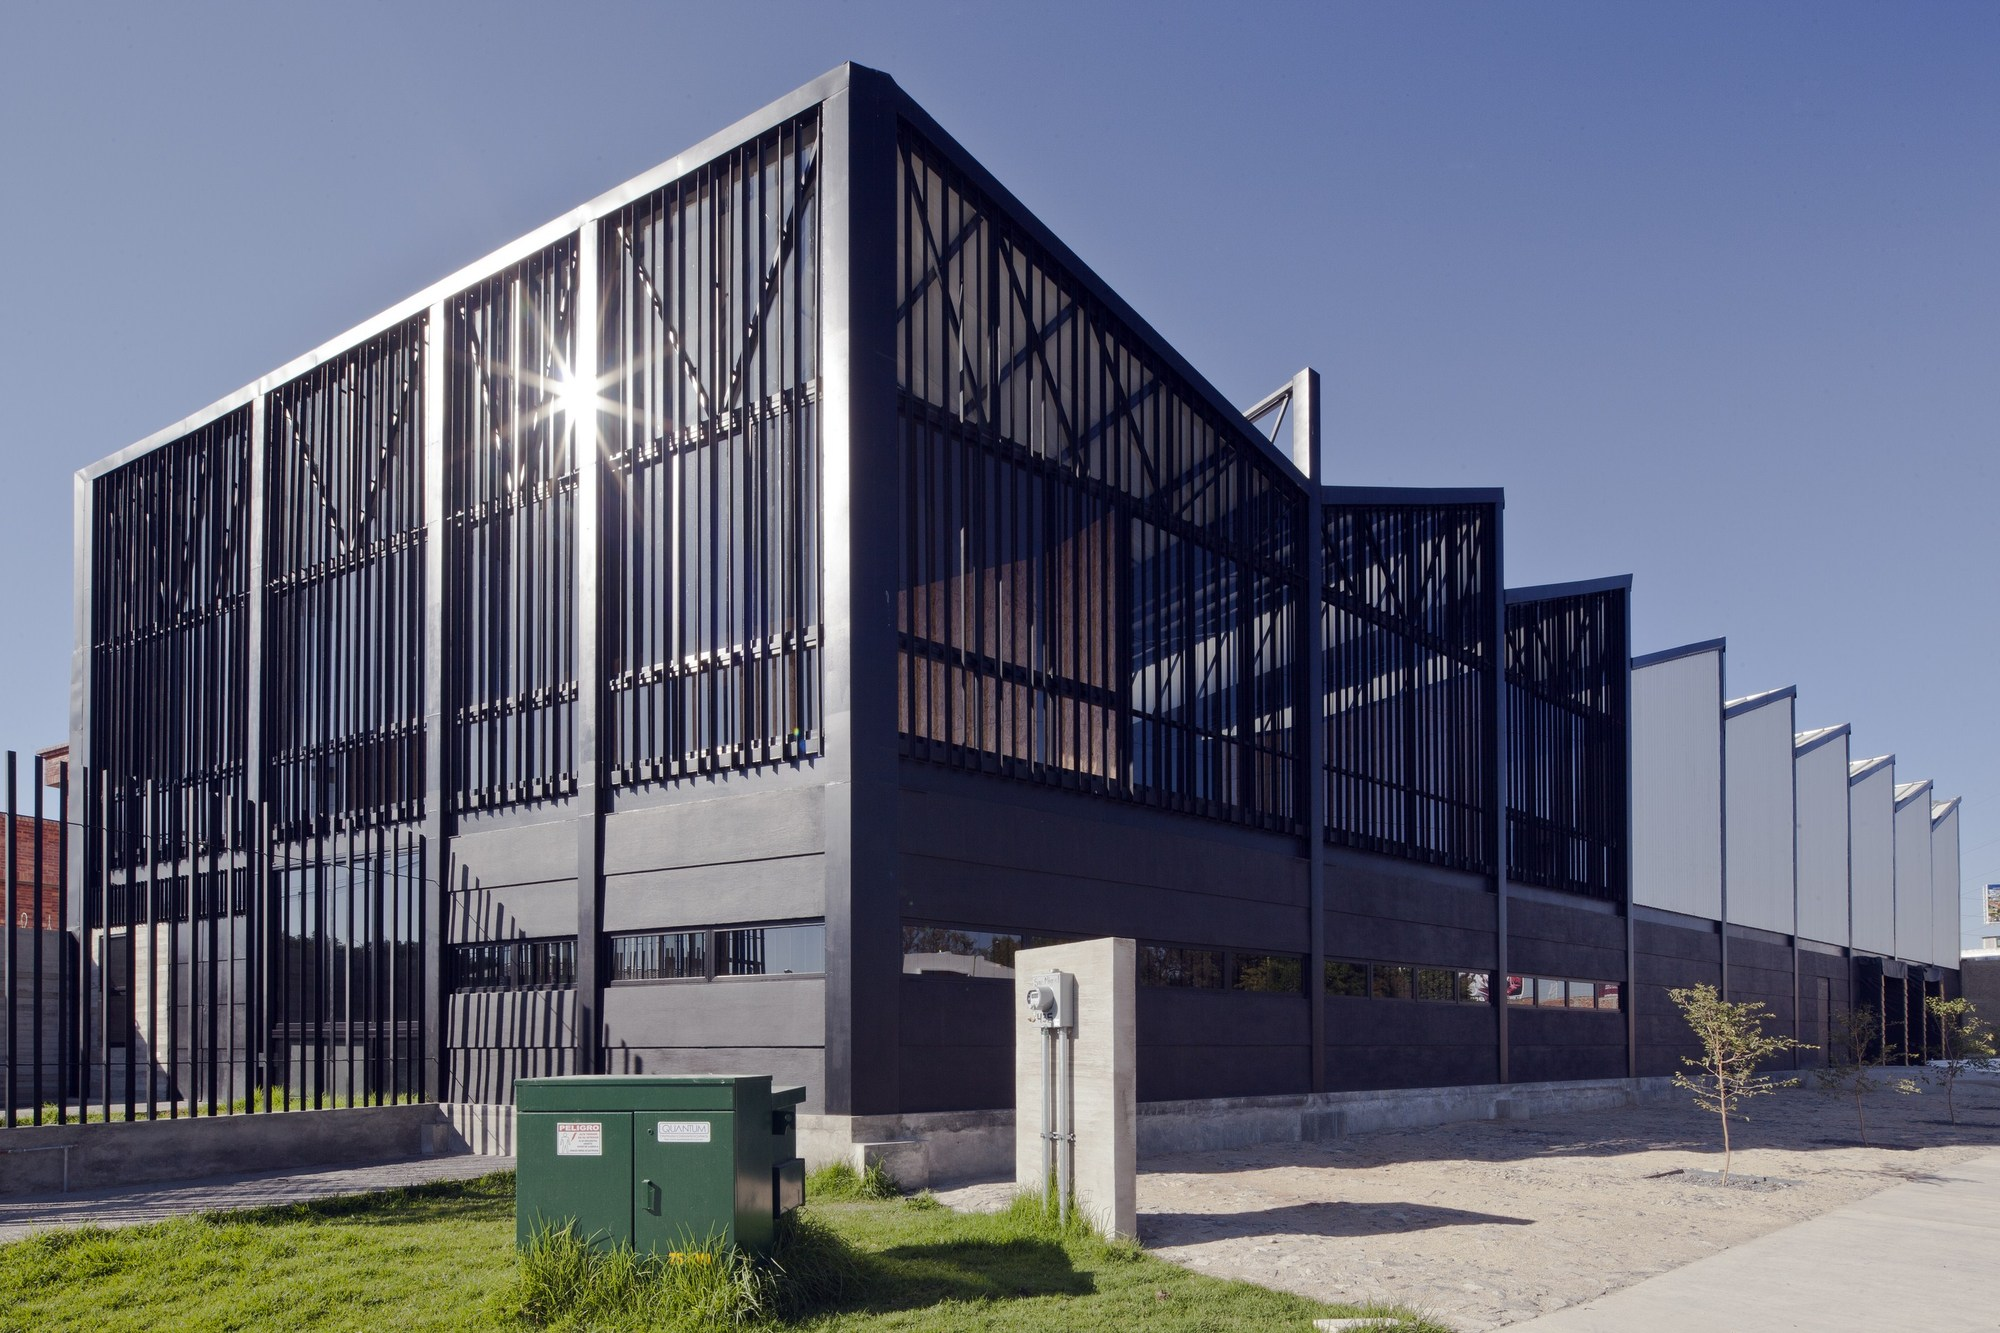 Levering Trade Atelier Ars Archdaily